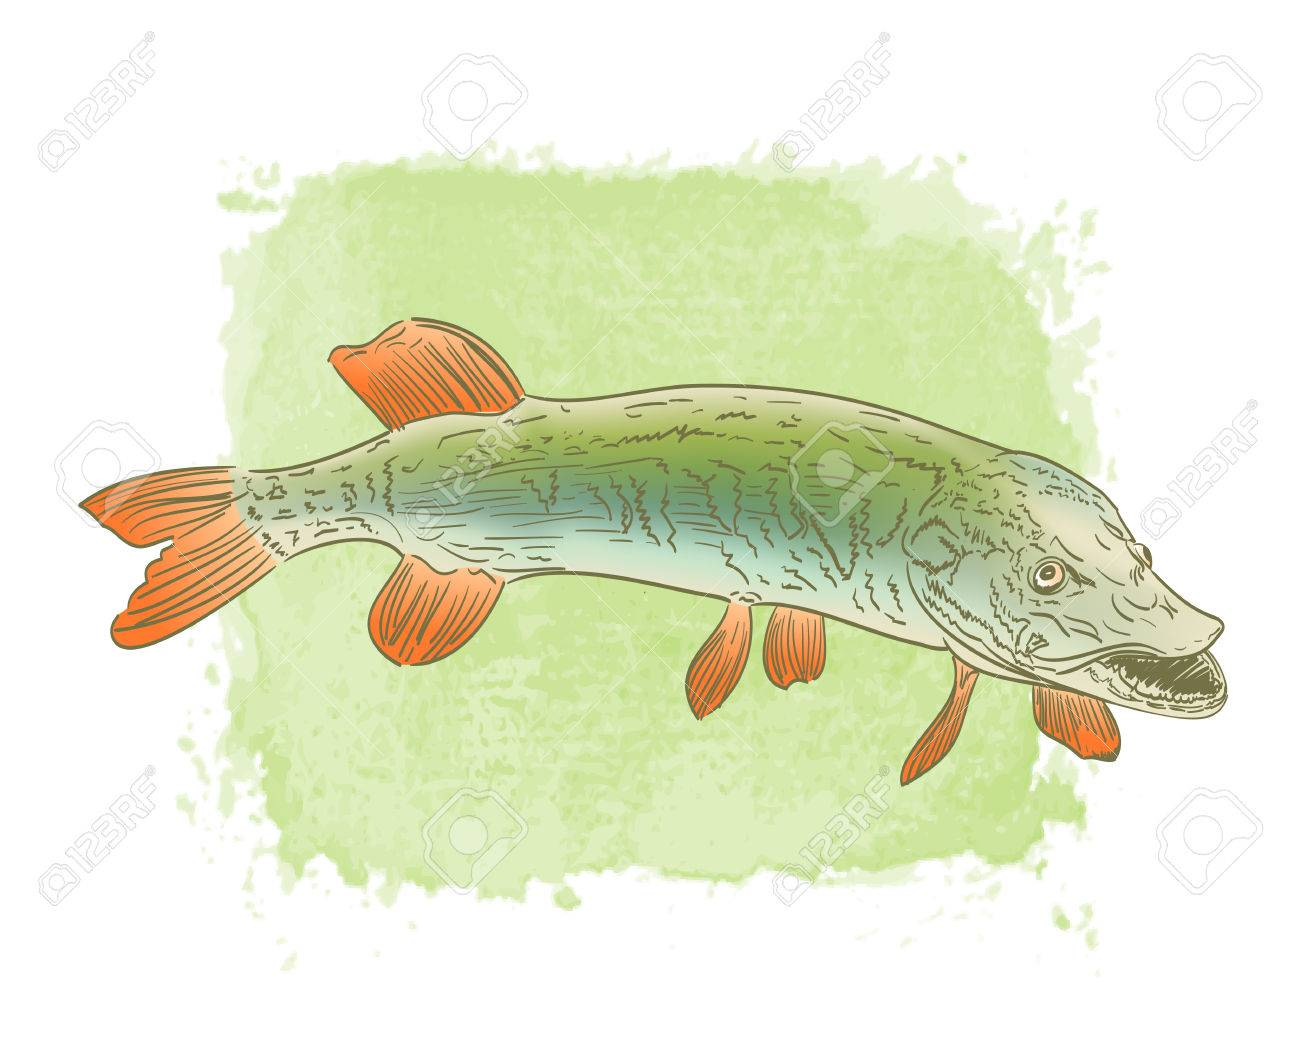 Freshwater Pike Fish Color Drawing On Watercolor Background Royalty ...